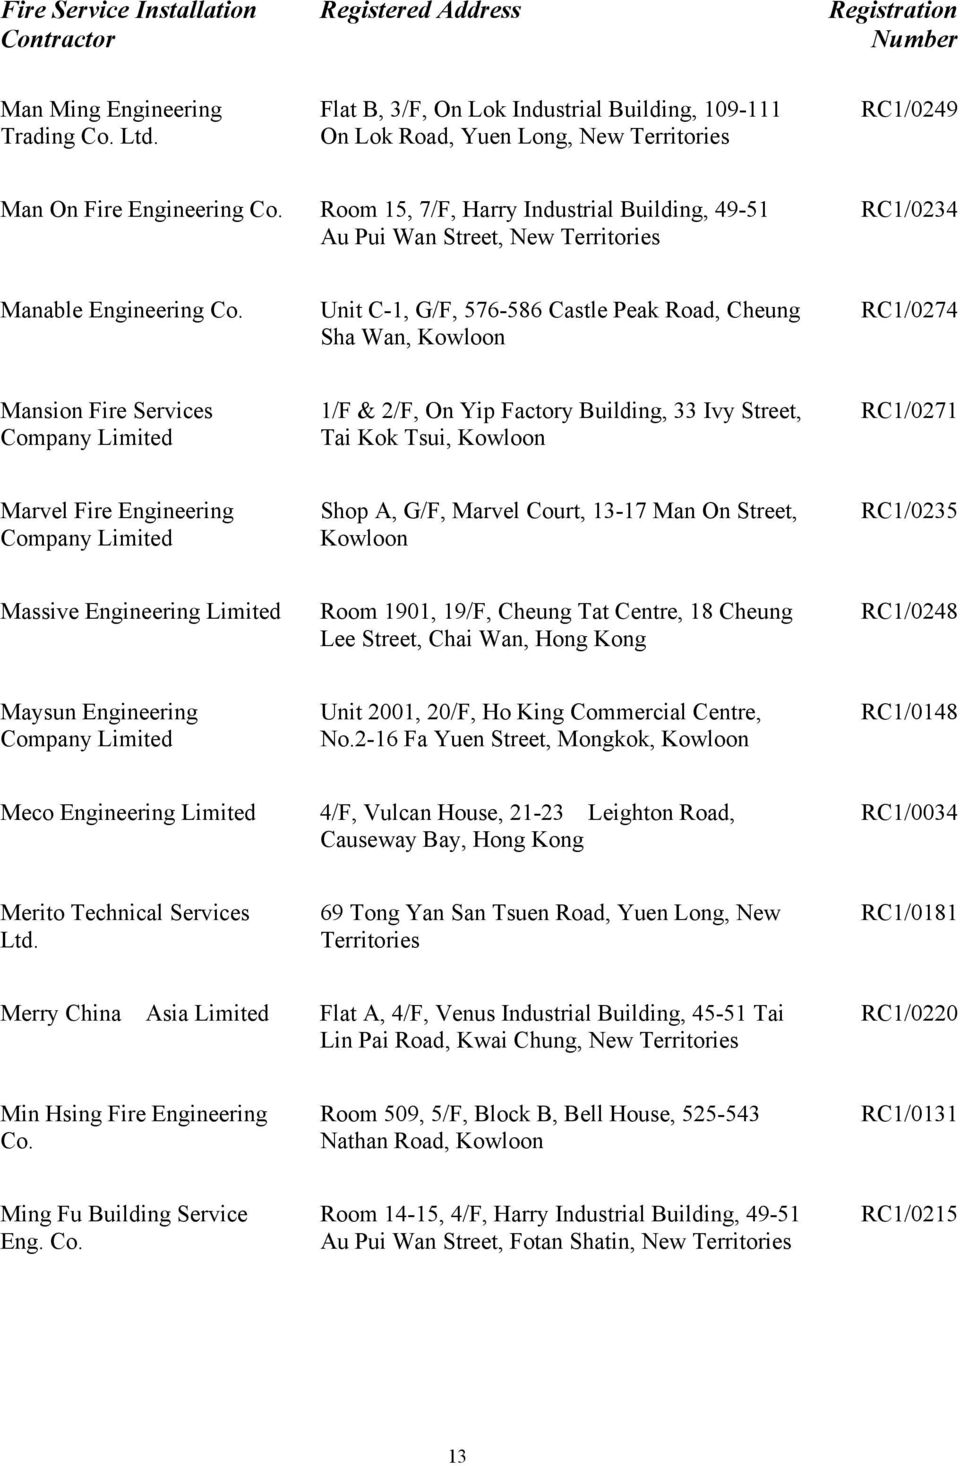 Unit C-1, G/F, 576-586 Castle Peak Road, Cheung Sha Wan, Kowloon RC1/0274 Mansion Fire Services Company 1/F & 2/F, On Yip Factory Building, 33 Ivy Street, Tai Kok Tsui, Kowloon RC1/0271 Marvel Fire